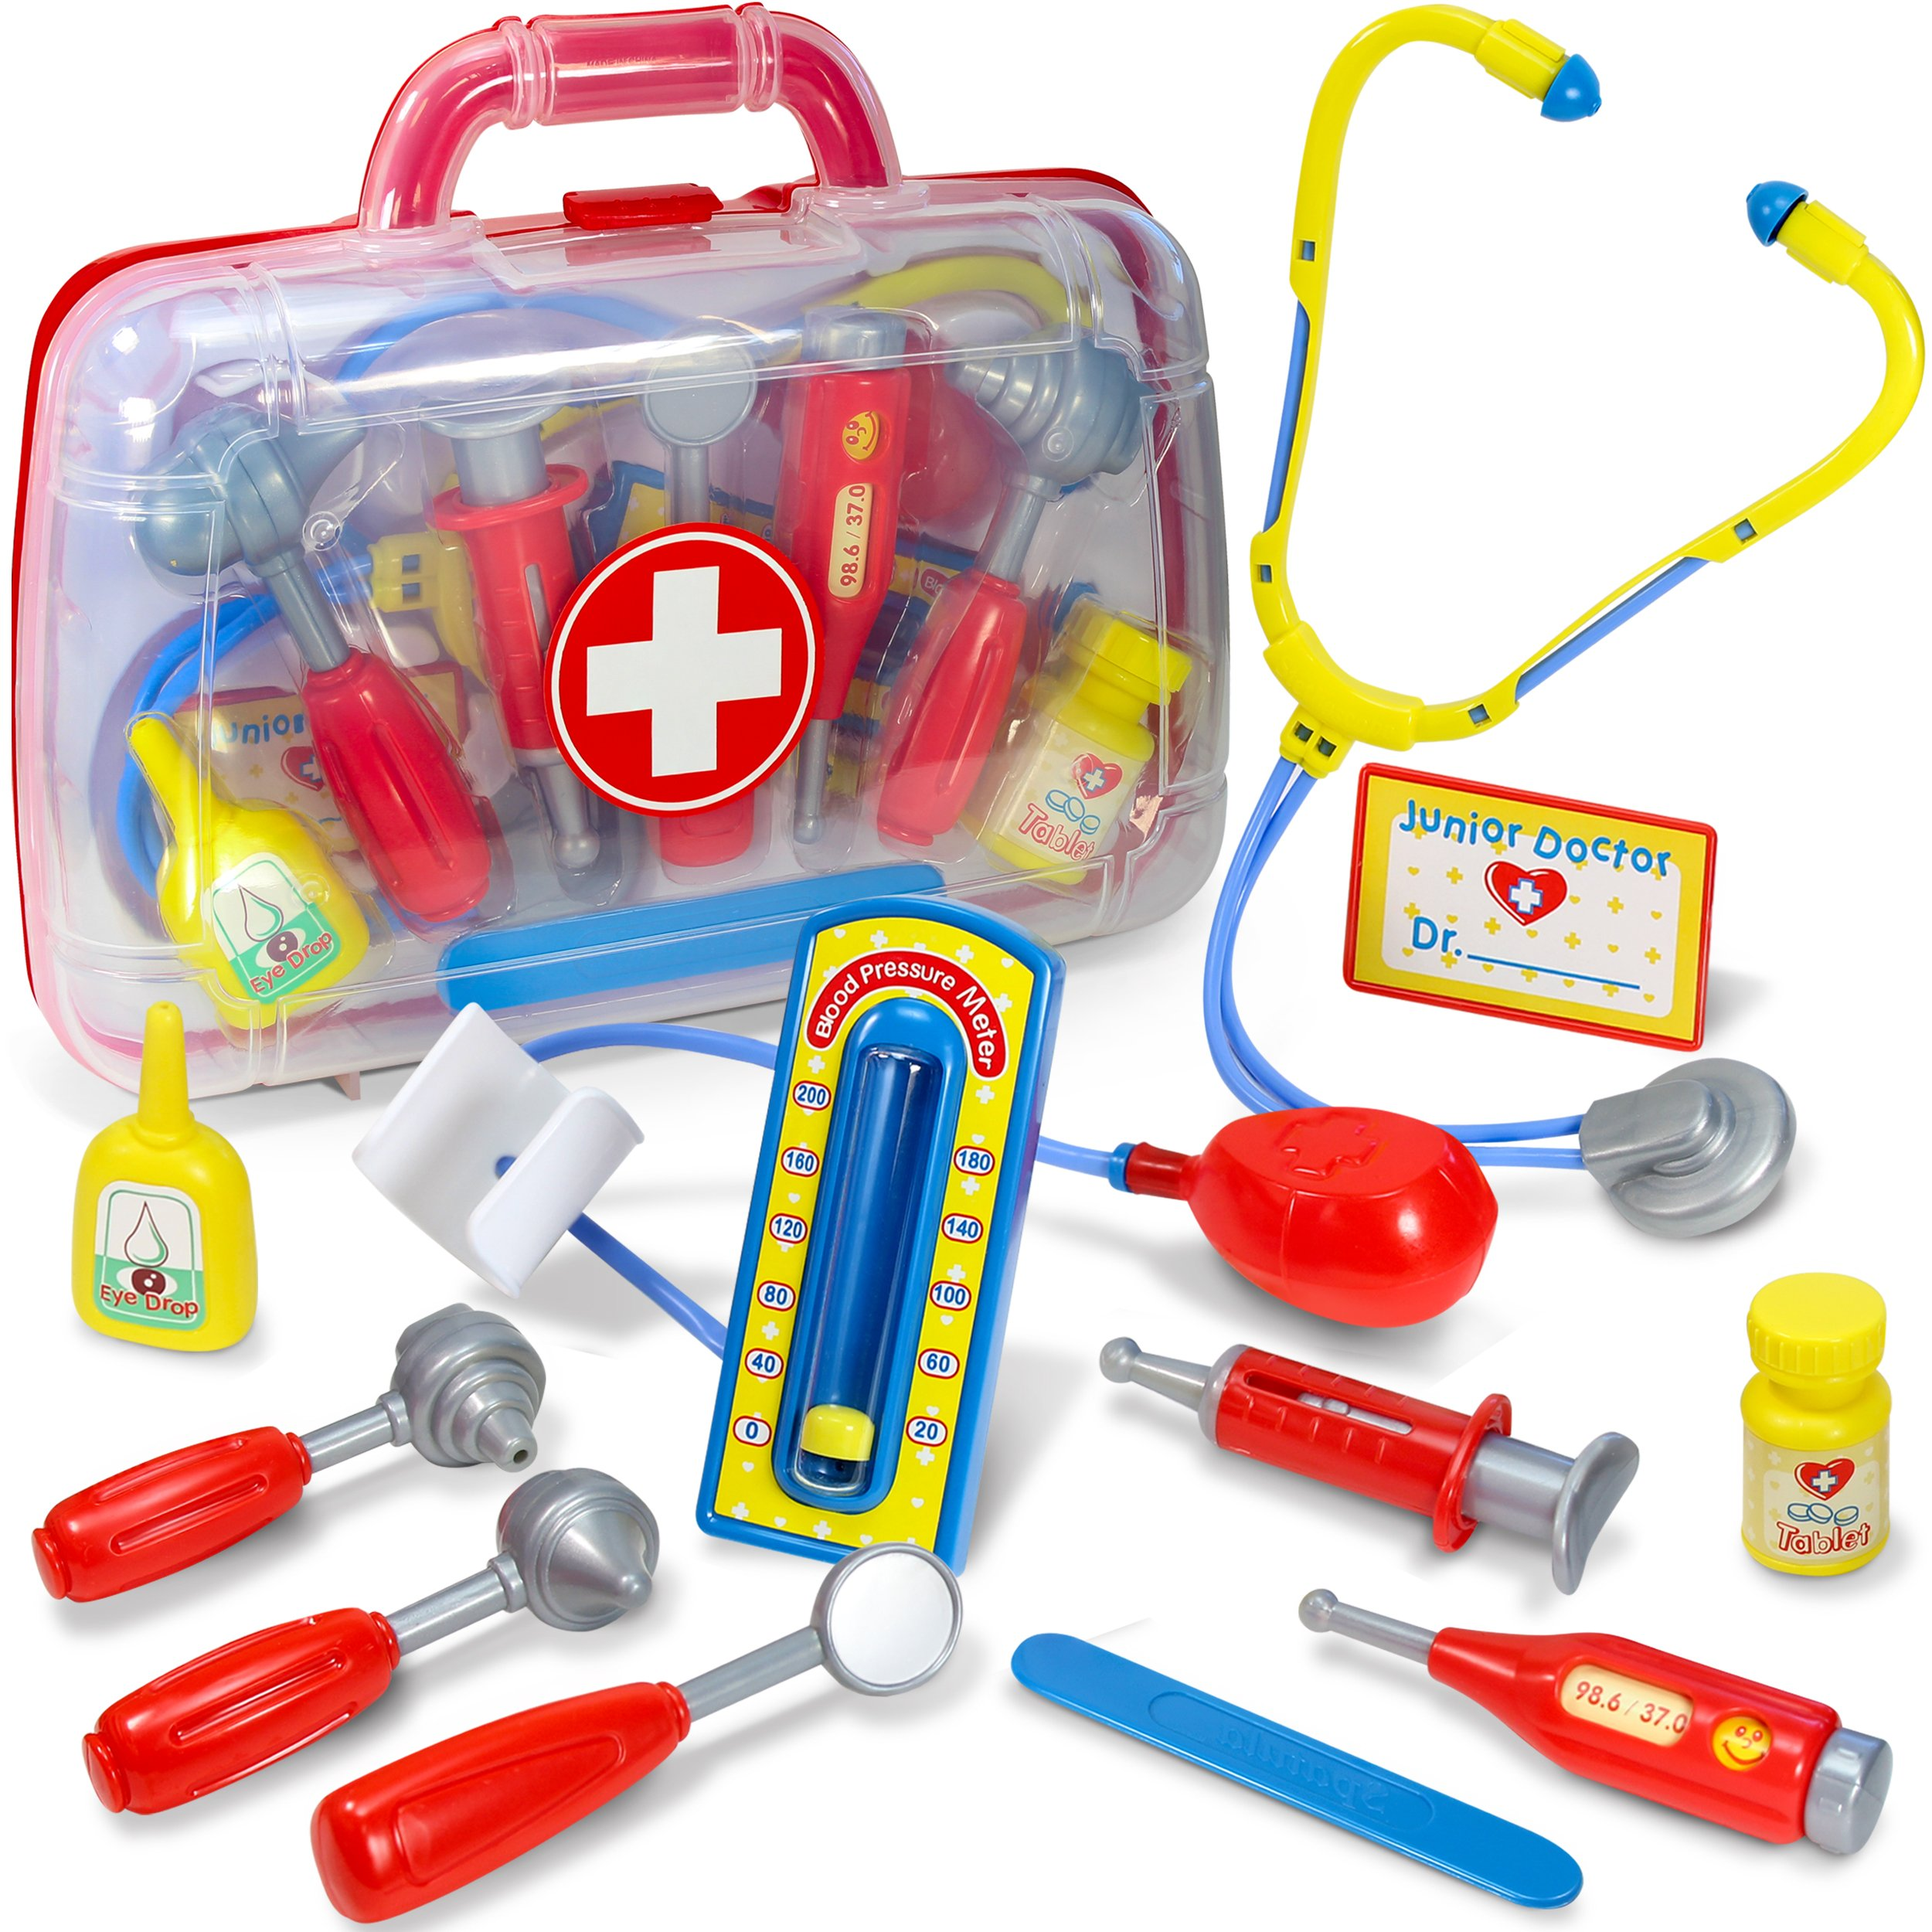 Kidzlane Medical Doctor Kit for Kids - Pretend & Play Doctor Set - Packed in a Sturdy Gift Case by Kidzlane